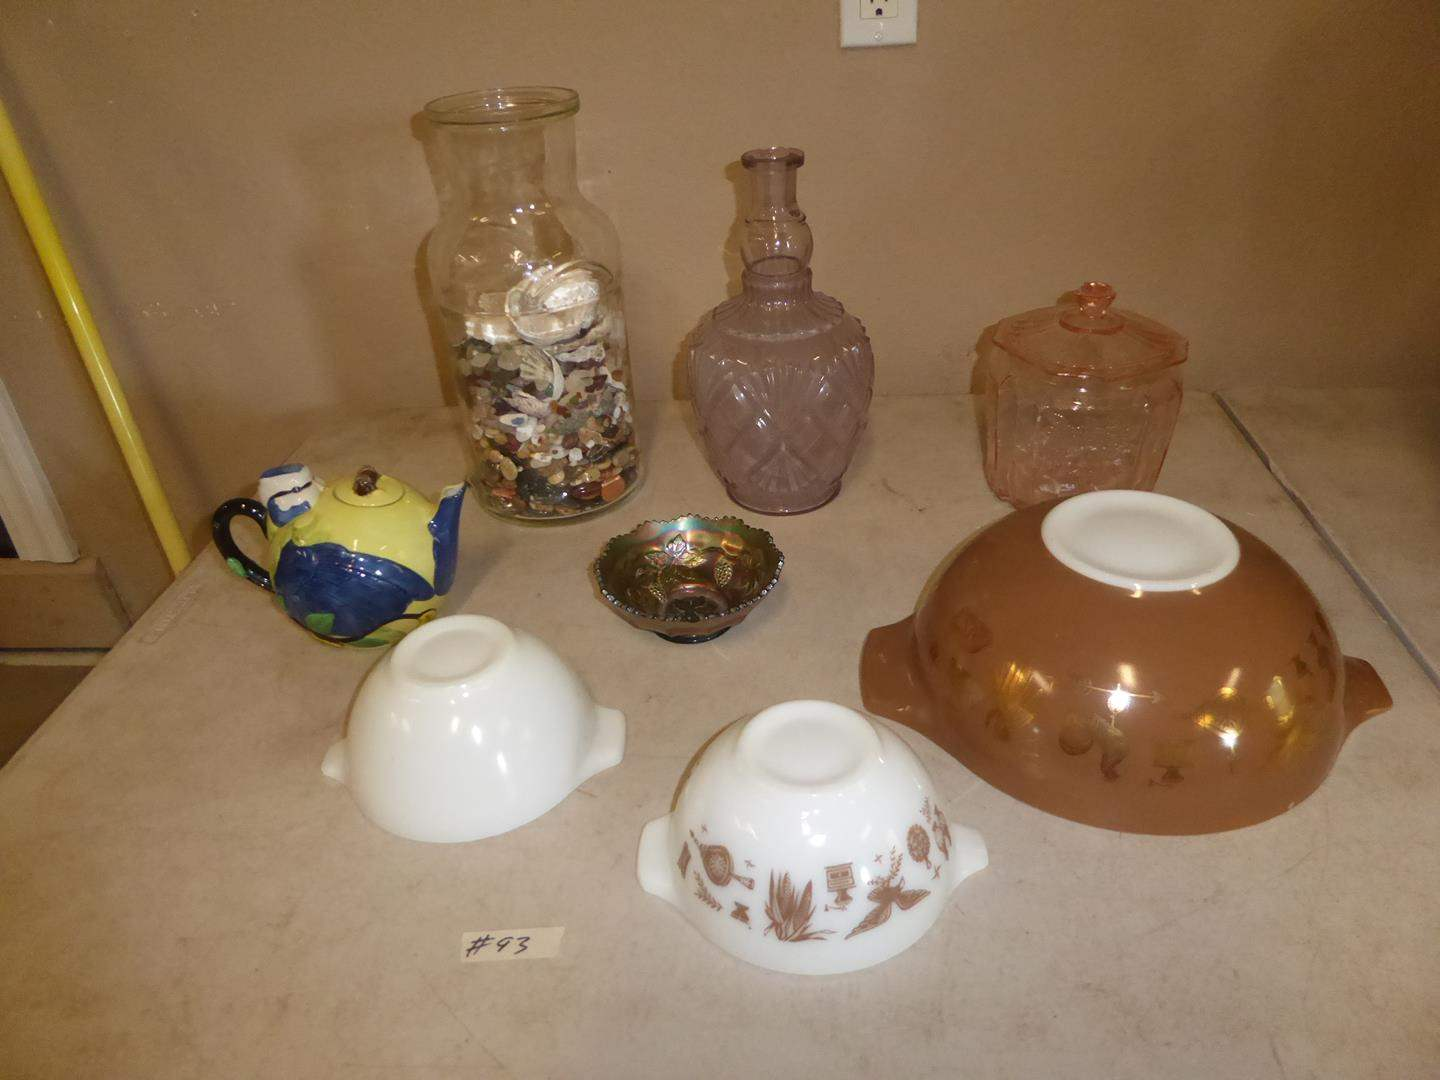 Lot # 93 - Vintage Pyrex Mixing Bowls, Green Carnival Glass Bowl, Covered Pink Glass Candy Dish, Jar Full of Beach Glass & Rocks (main image)